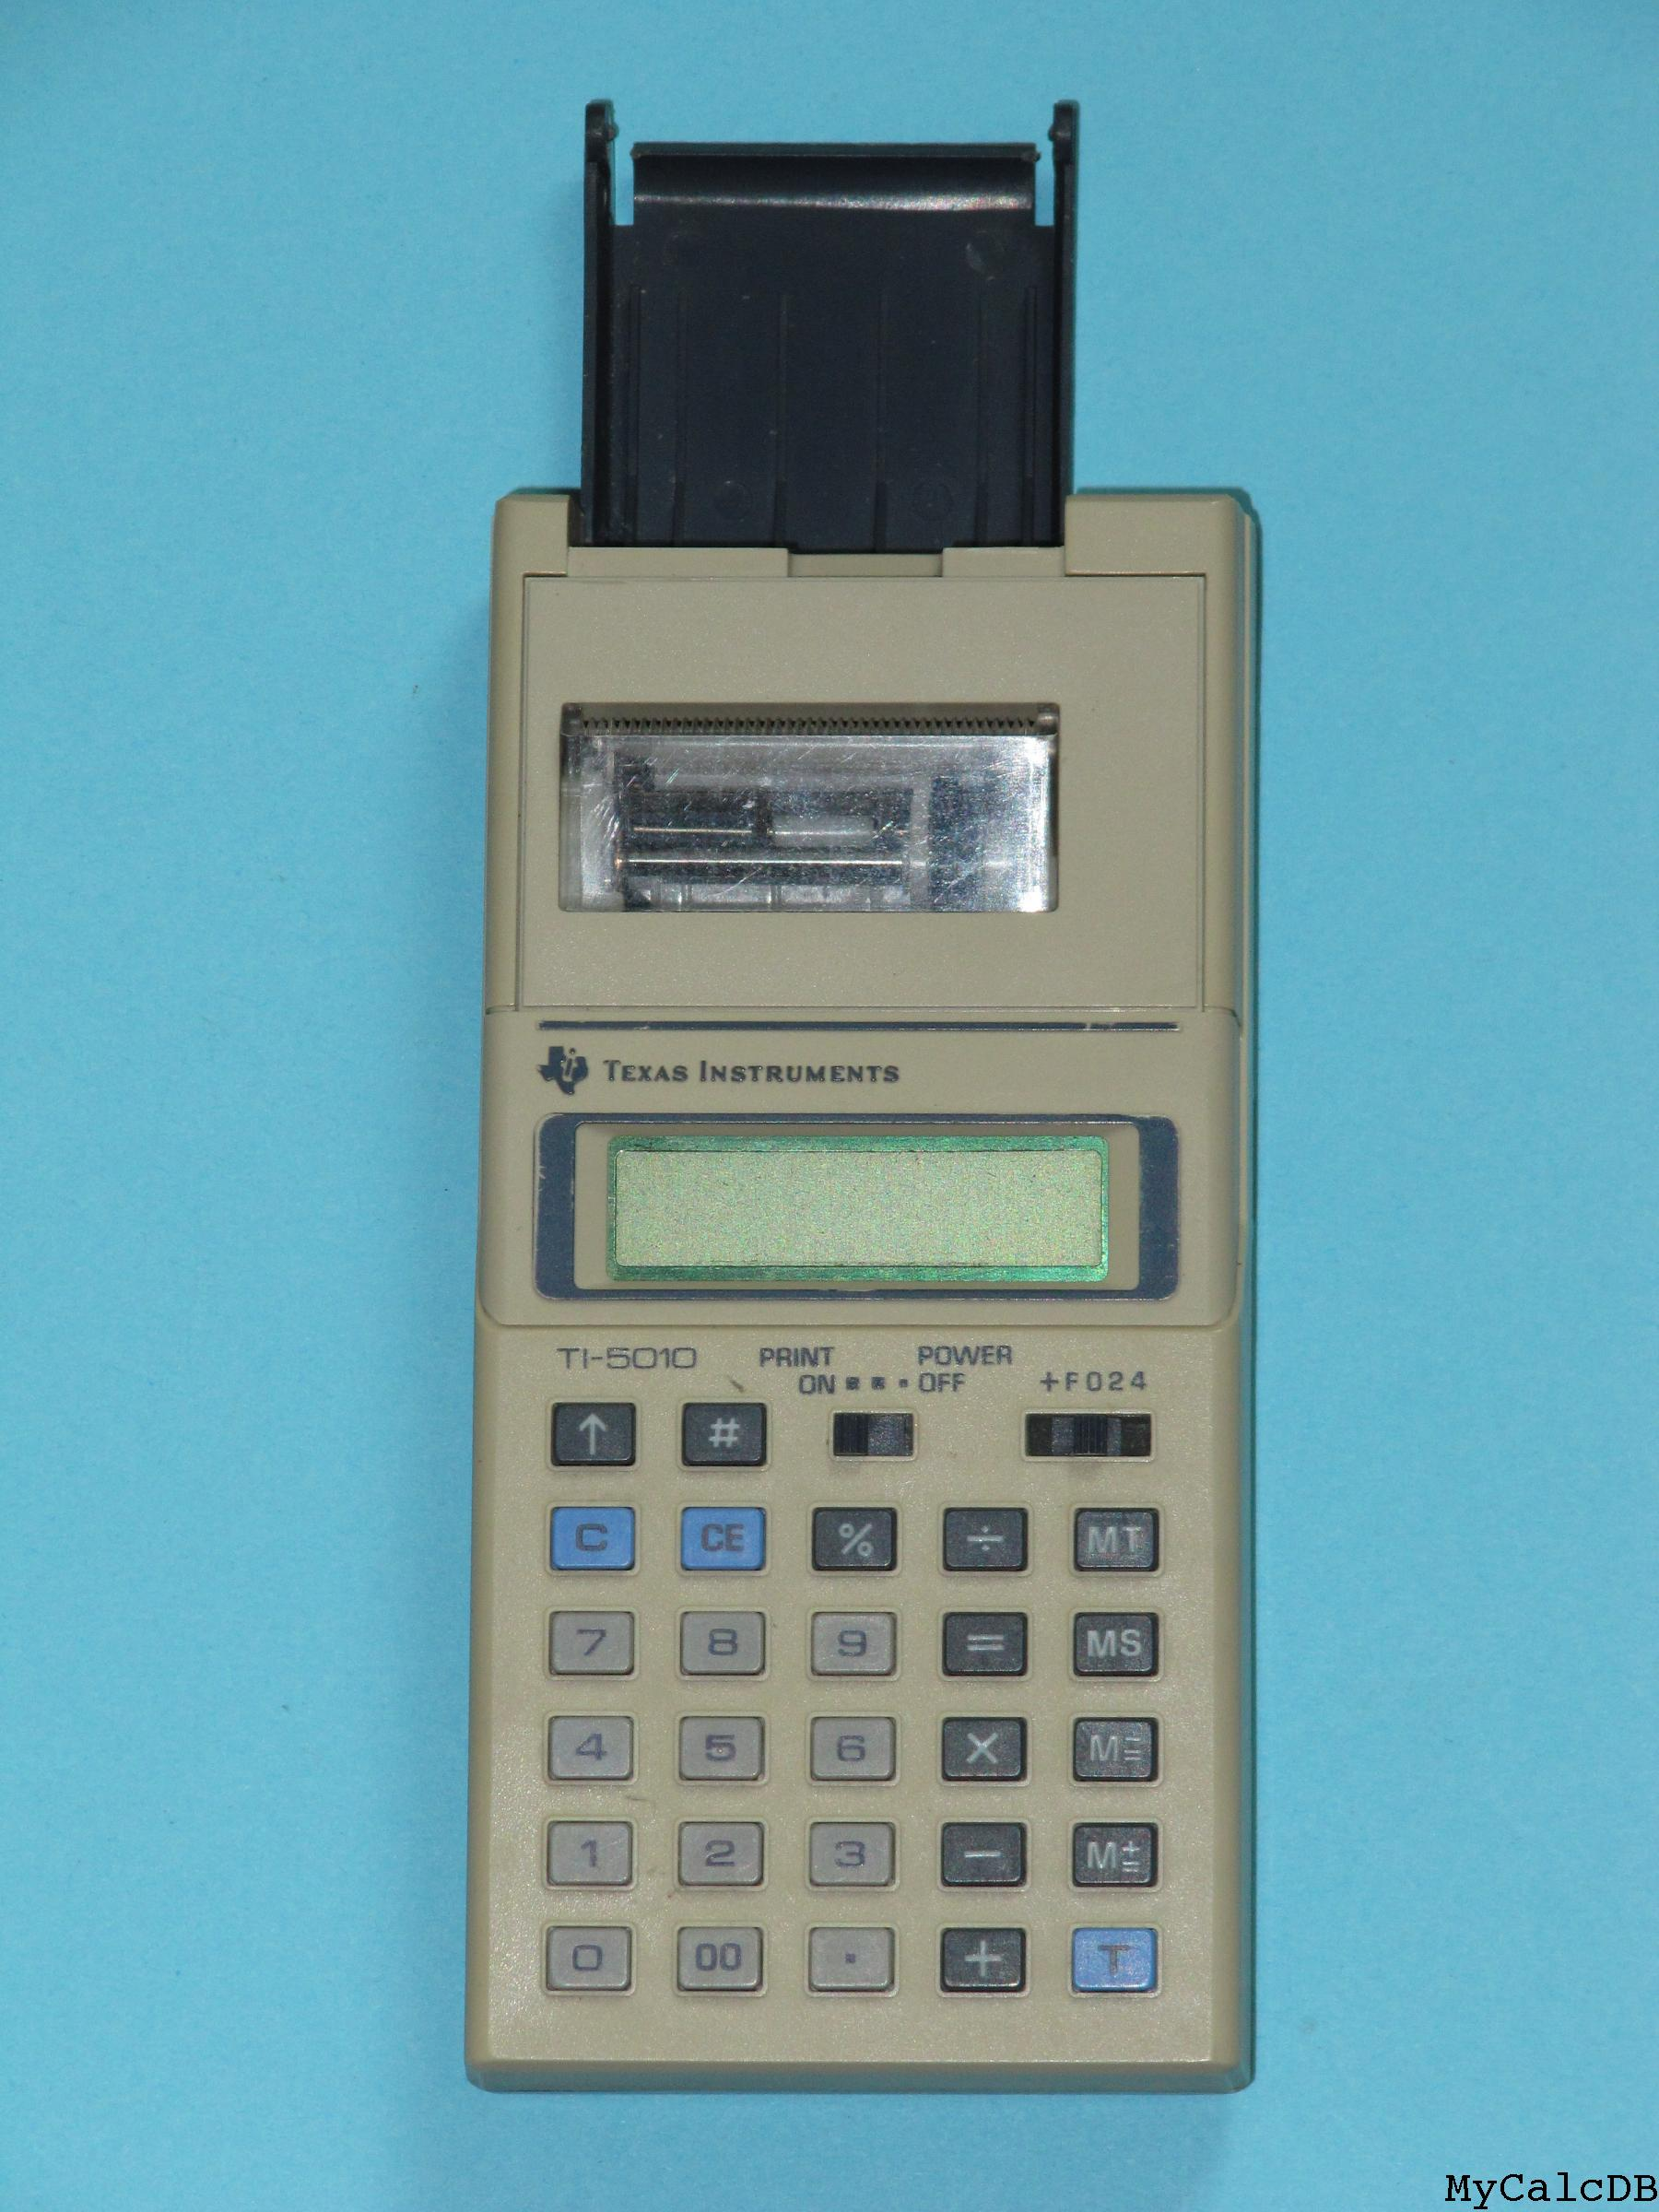 Texas Instruments TI-5010